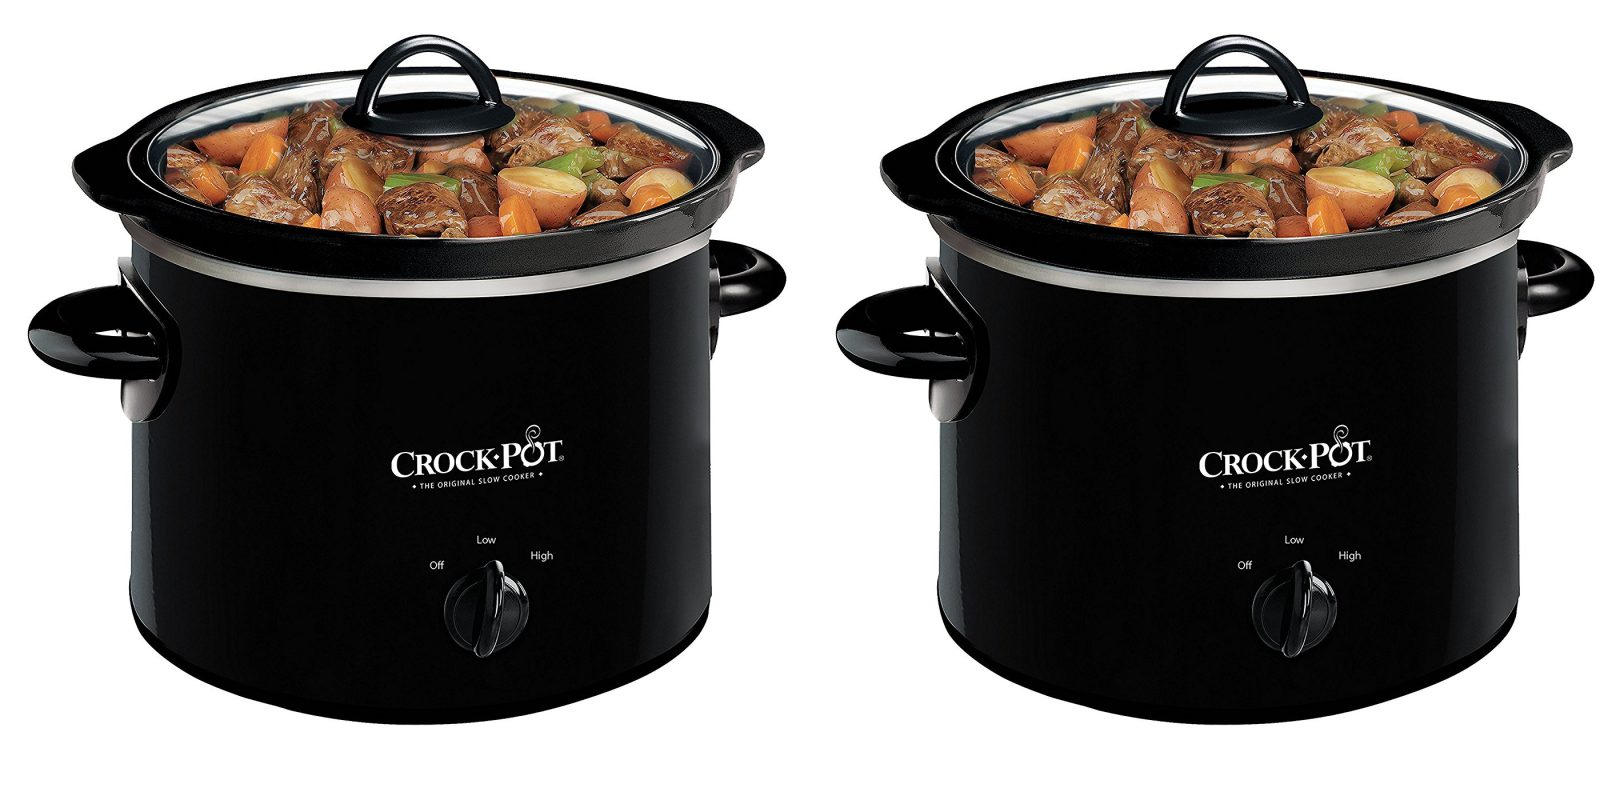 Bring Home A Brand New 2 Qt Crock Pot Slow Cooker For 850 Prime Shipped